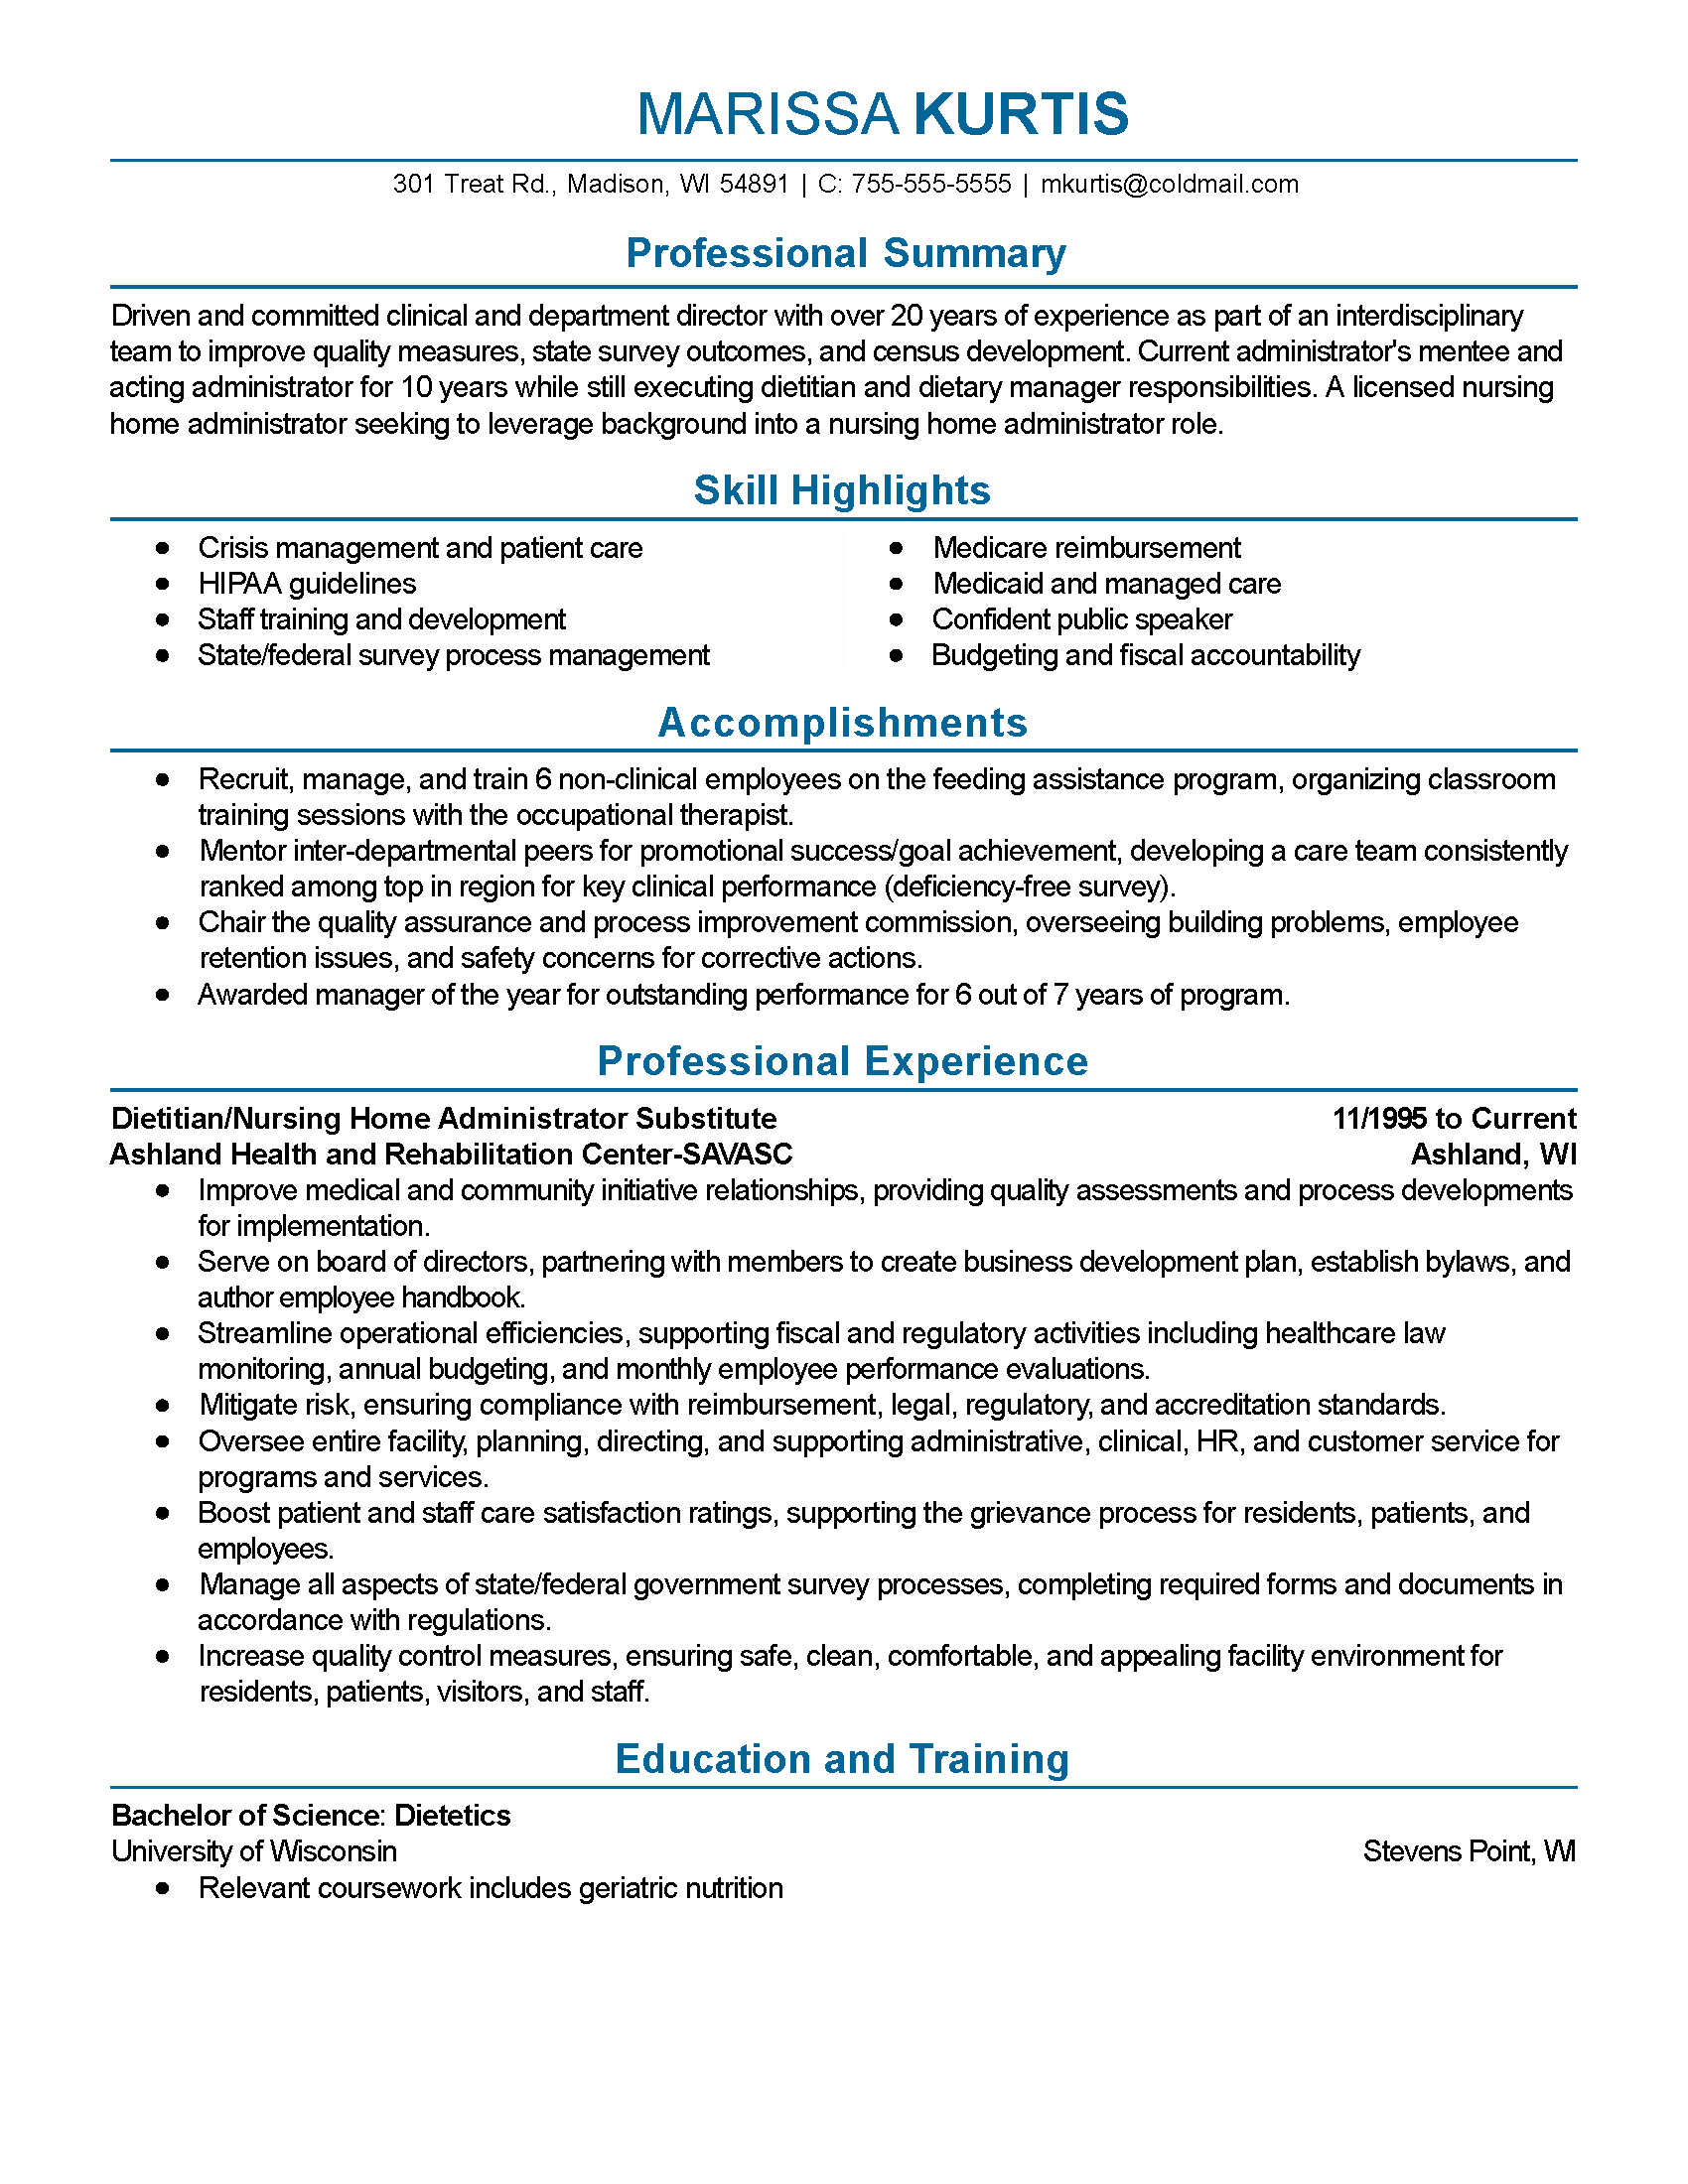 Professional Examples Of Resumes Professional Dietitian Templates To Showcase Your Talent